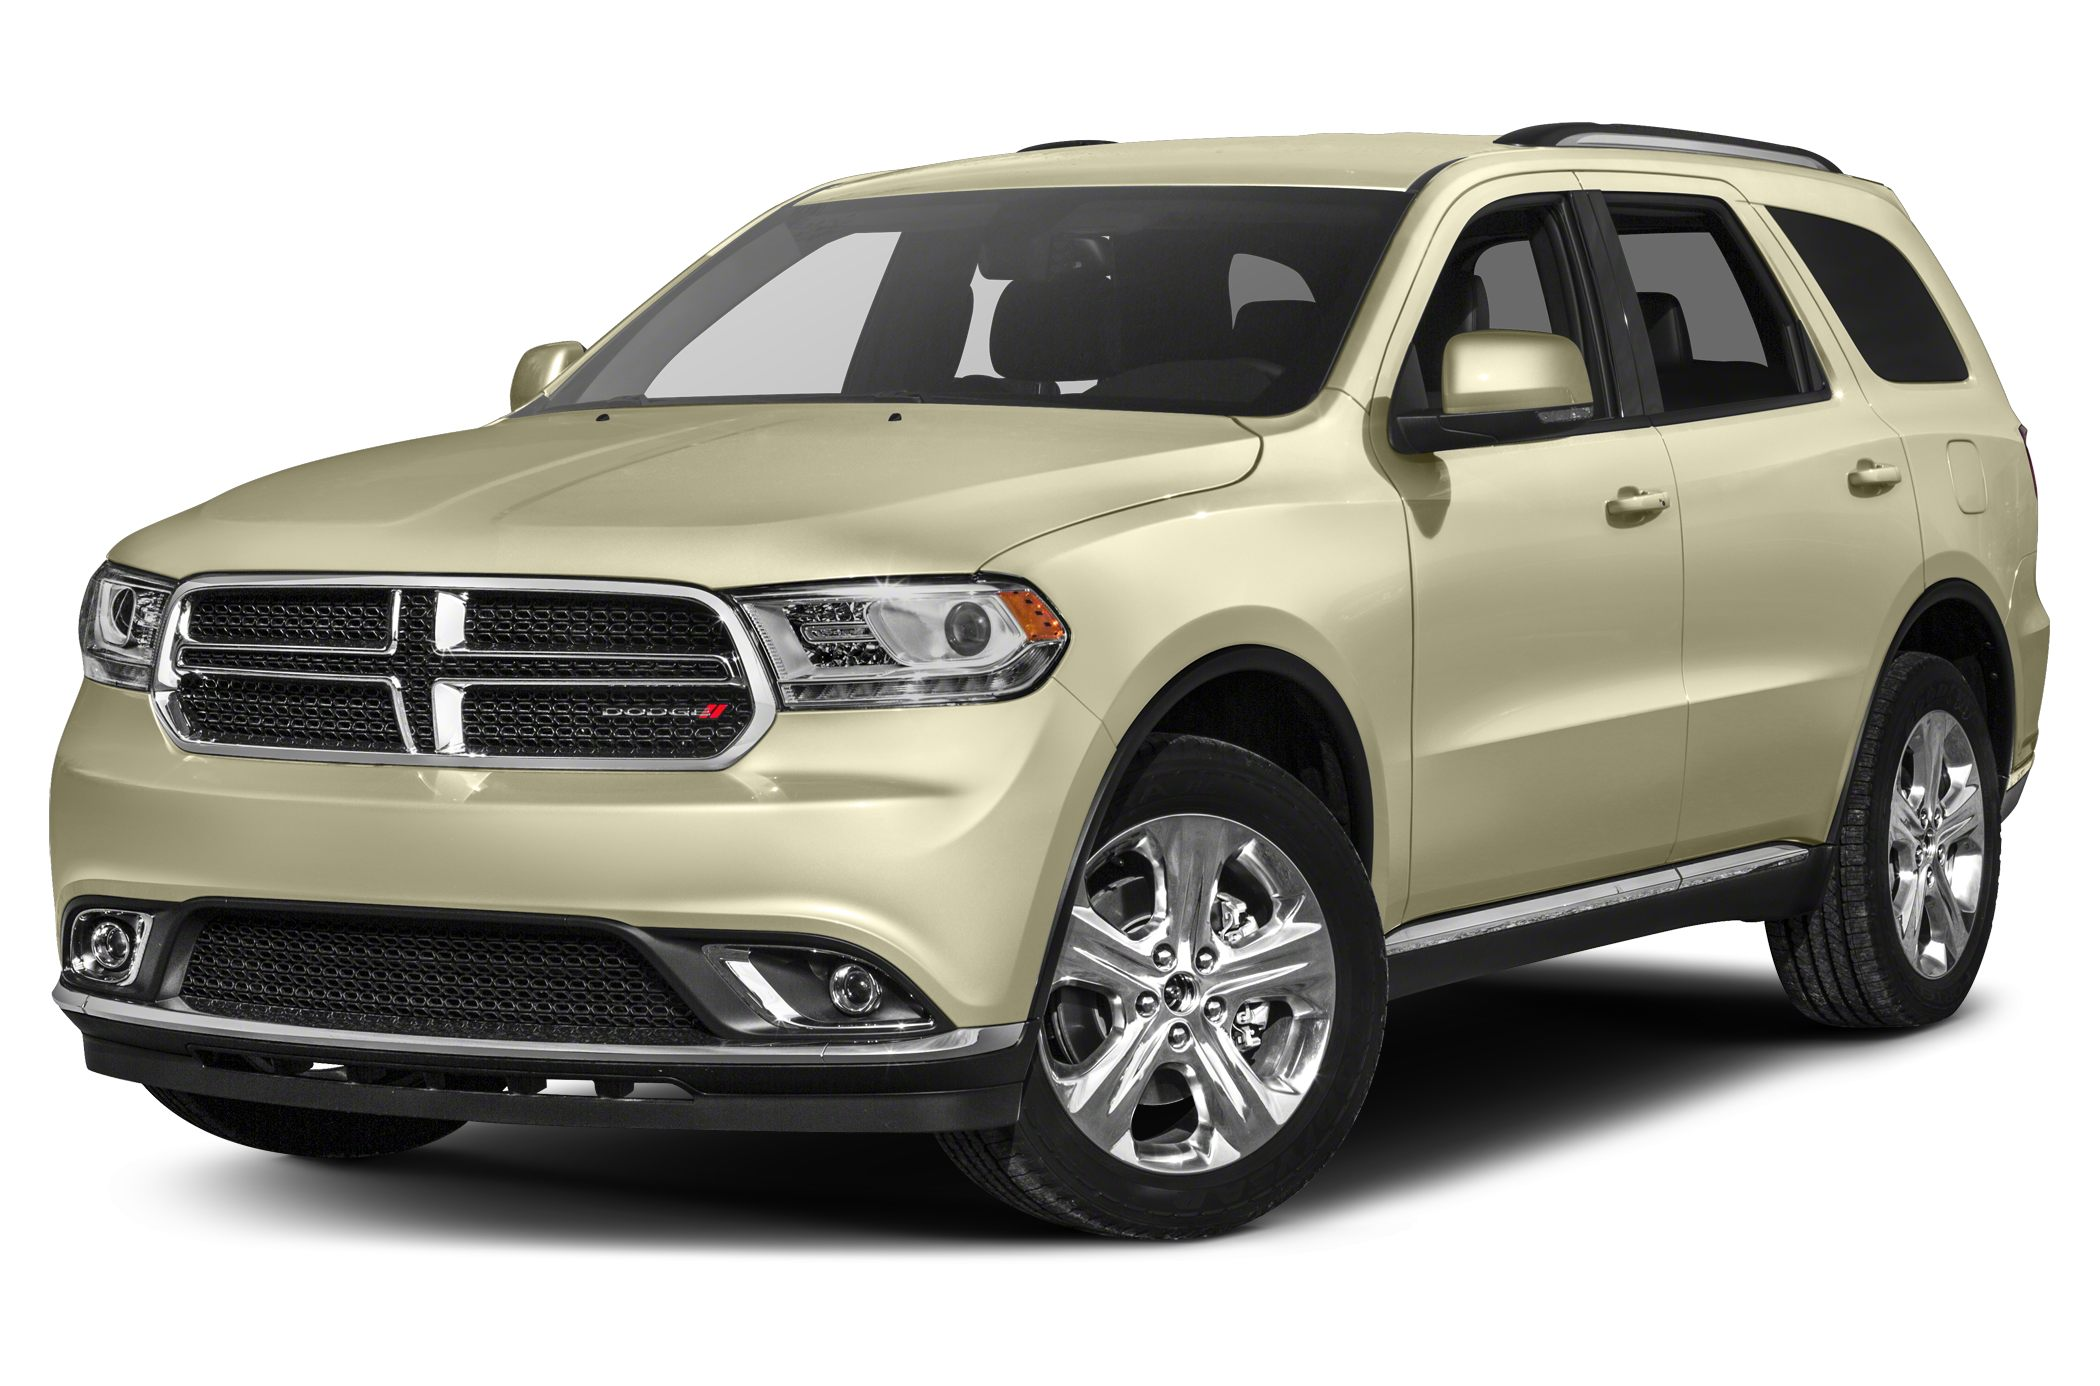 2014 Dodge Durango SXT SUV for sale in Elizabethtown for $36,345 with 94 miles.